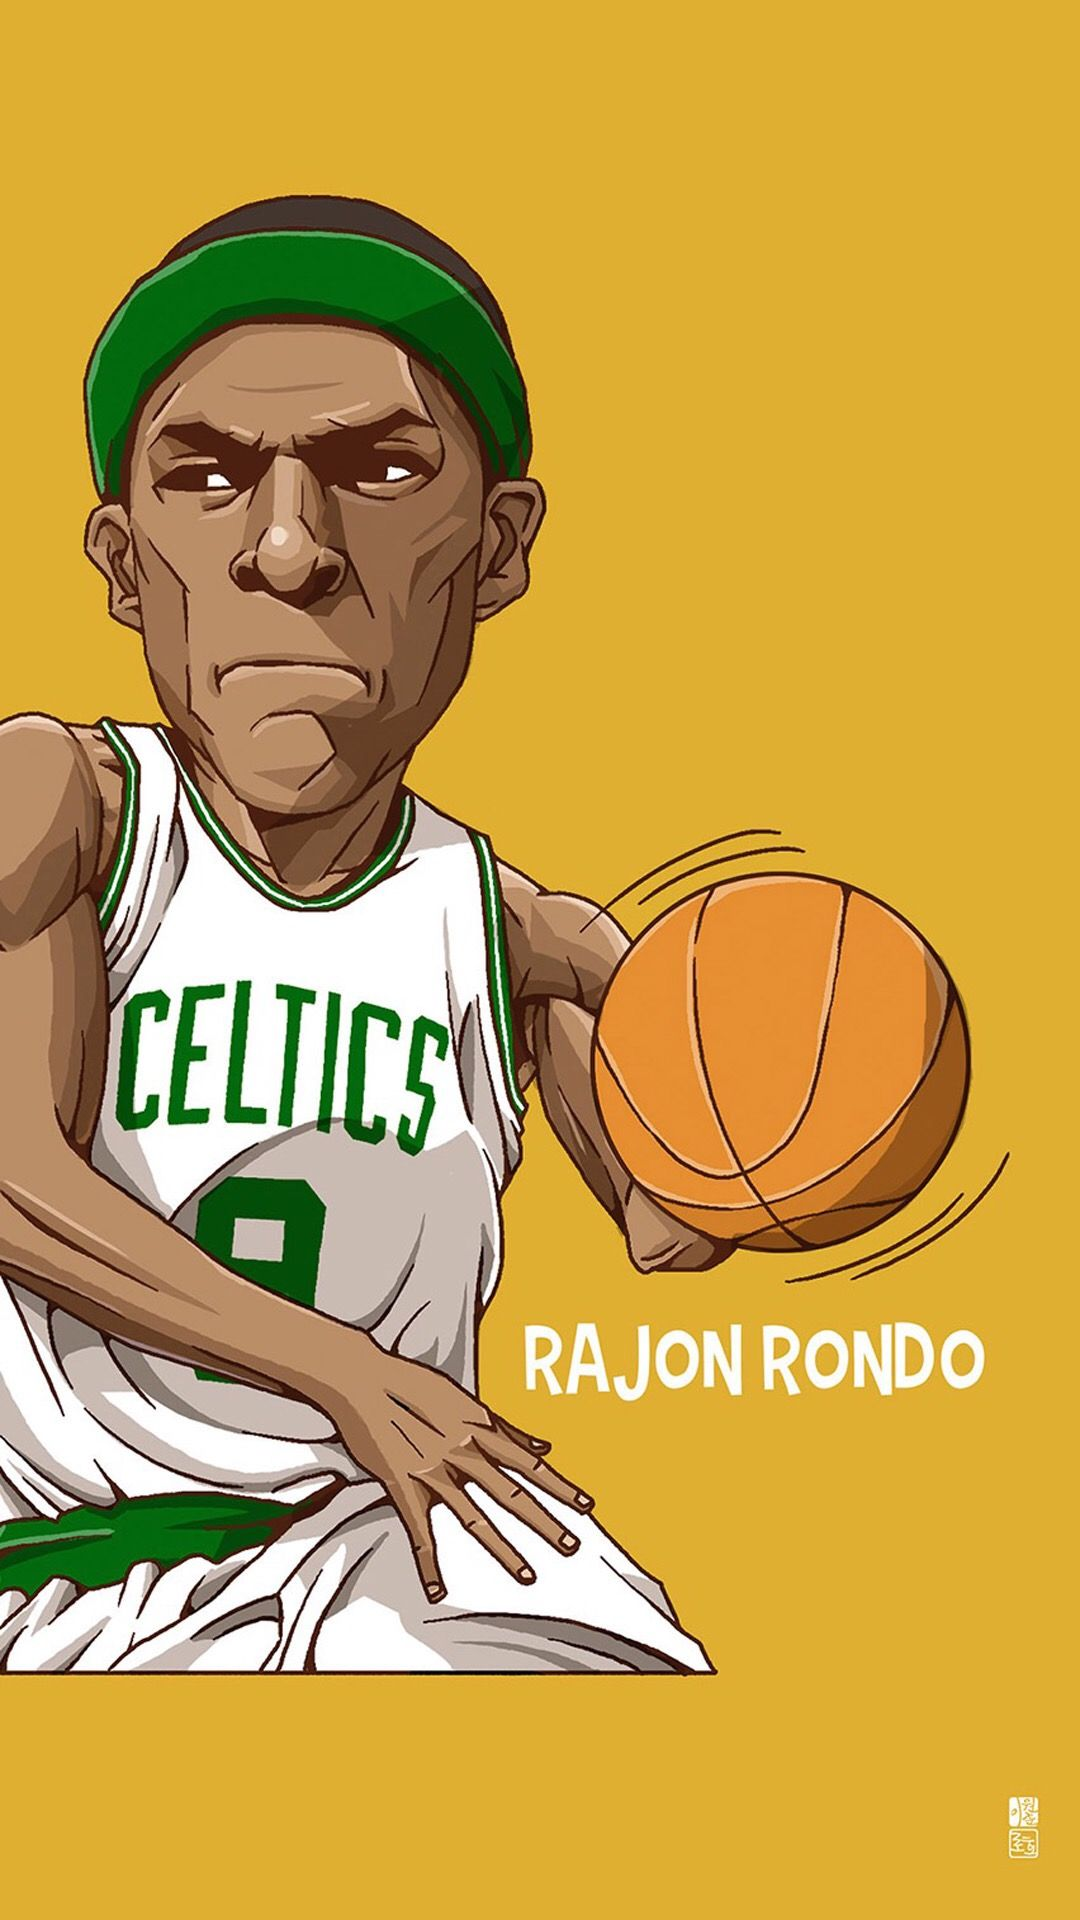 Cute Boy Wallpaper Mobile9 Rajon Rondo Tap To See Collection Of Famous Nba